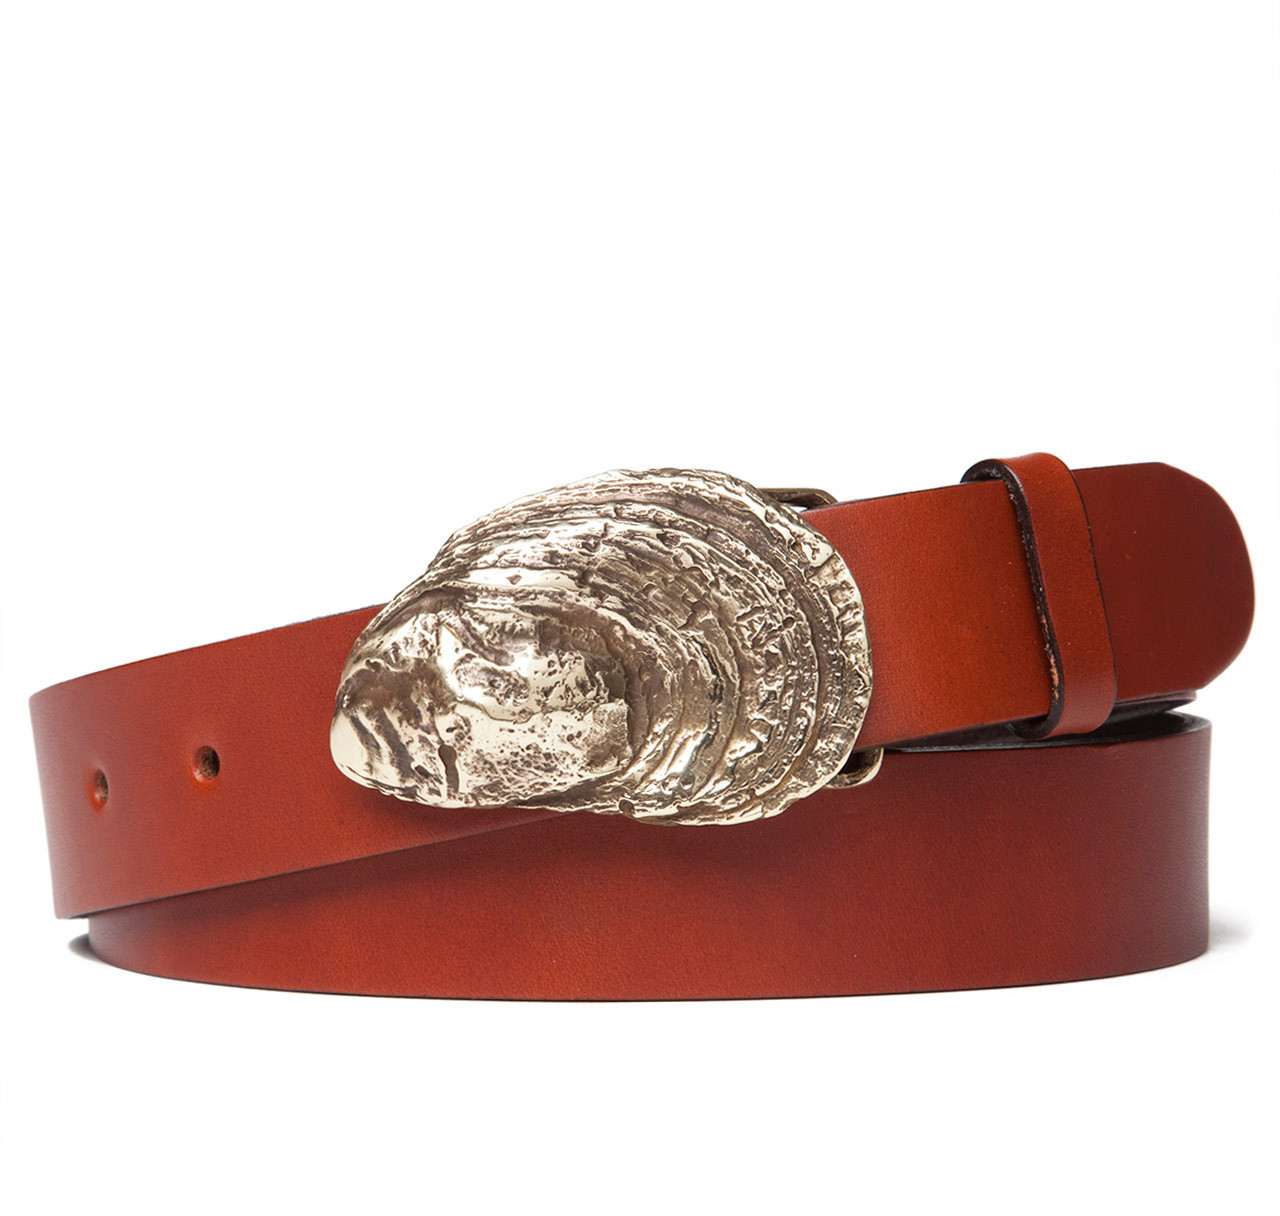 oyster shell buckle with leather belt sir s